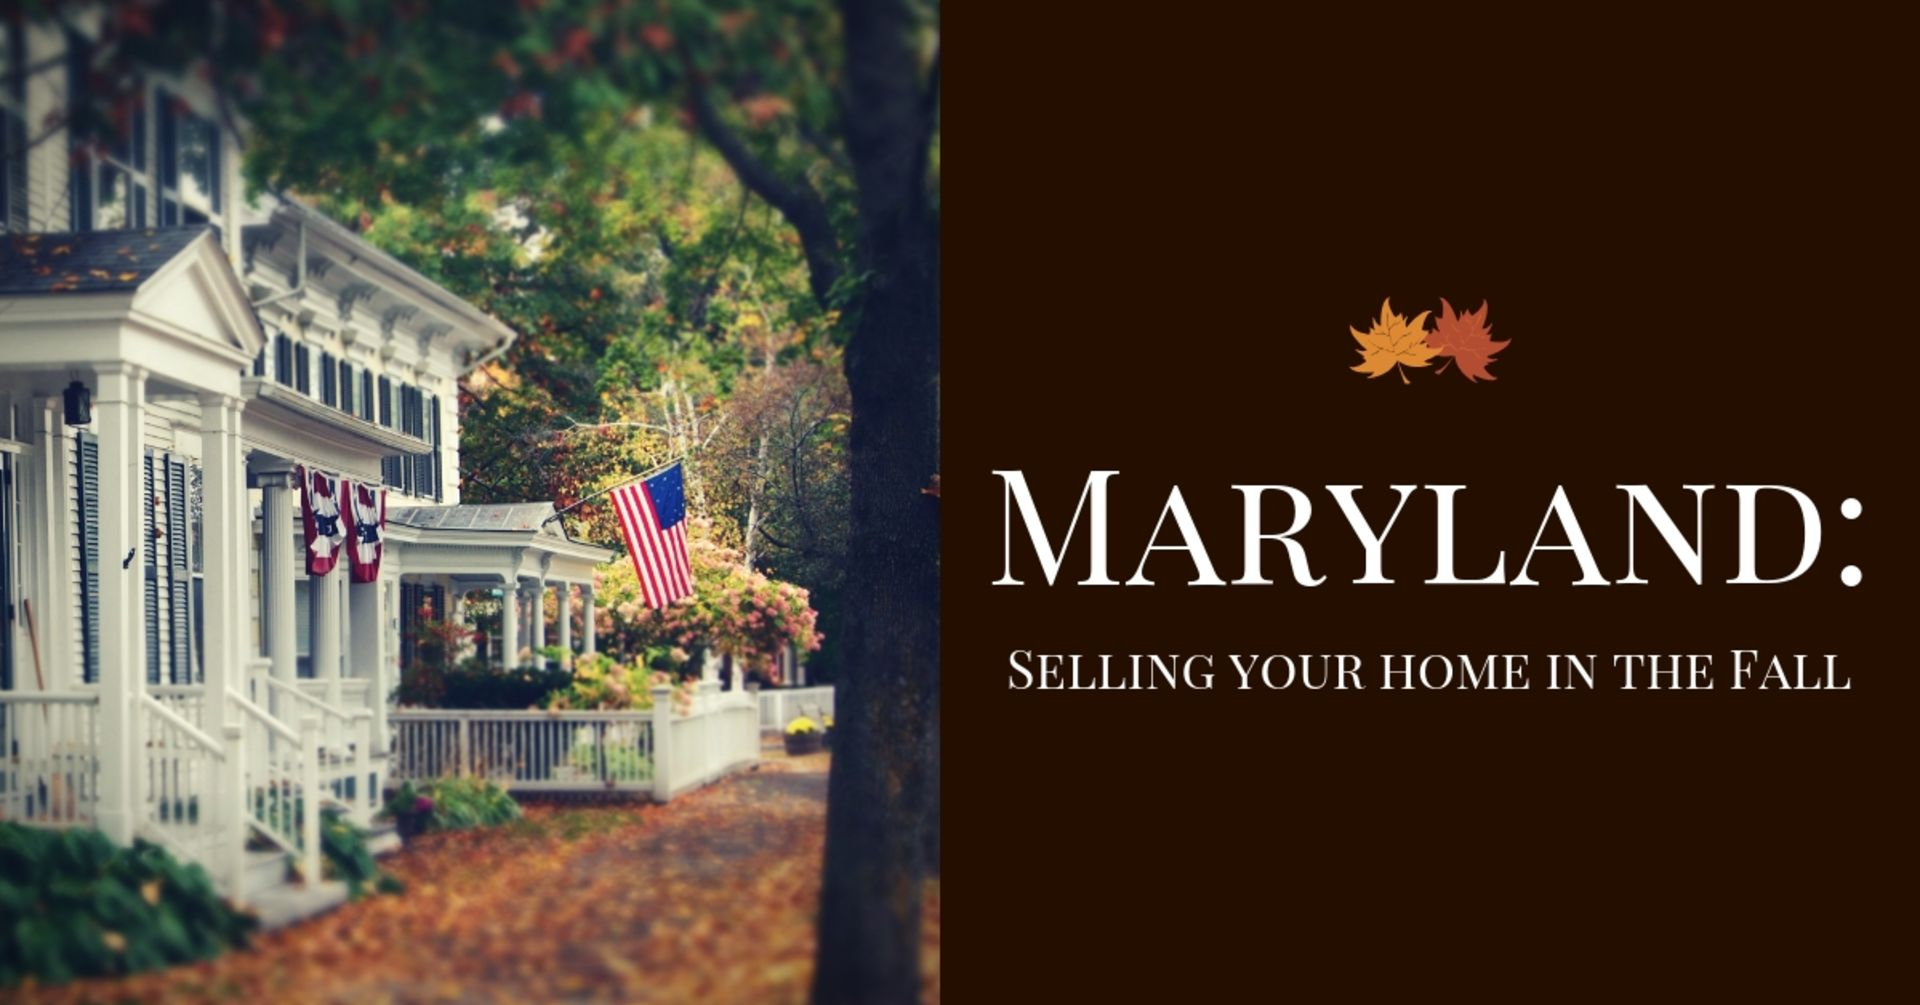 Maryland: Selling Your Home In The Fall